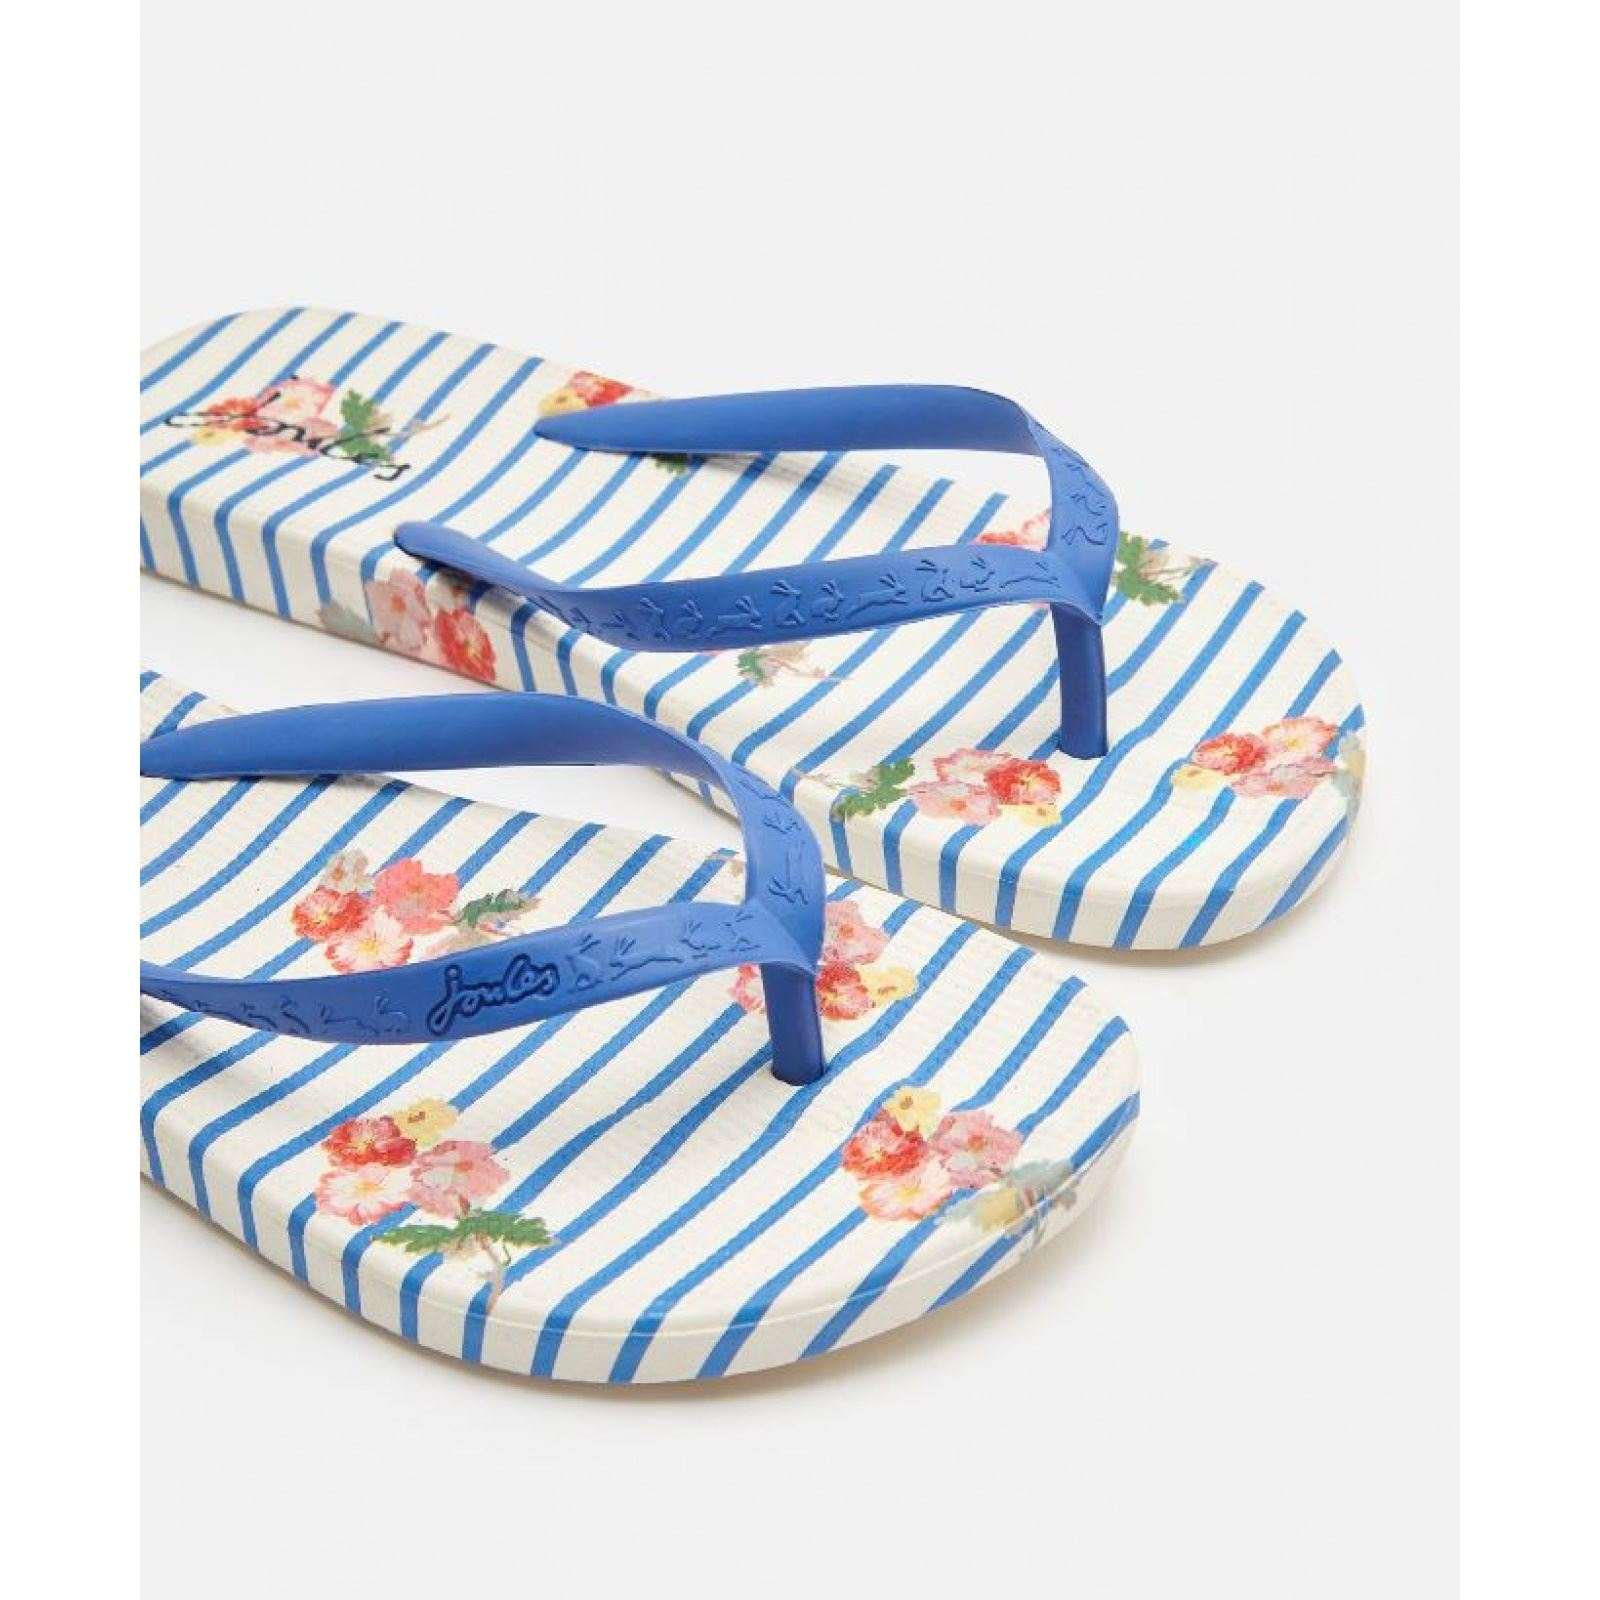 Joules-Flip-Flops-Sandals-Summer-Flip-Flop-NEW-2019-COLOURS thumbnail 19